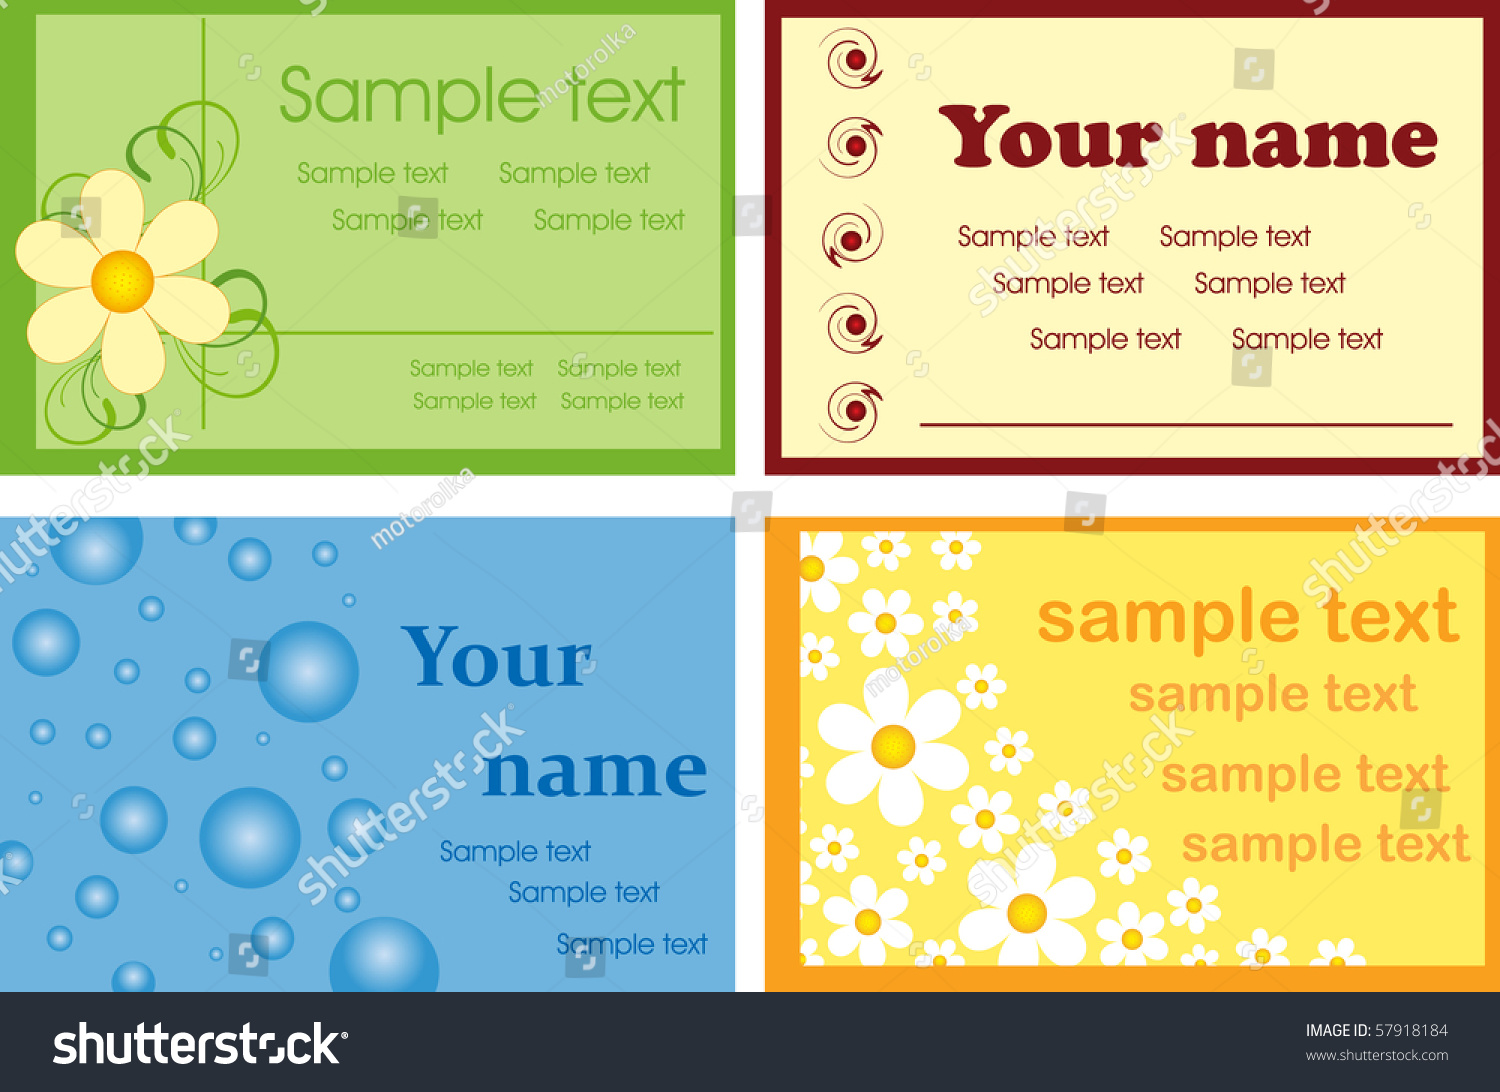 Various business cards card layouts stock vector 57918184 shutterstock various business cards card layouts colourmoves